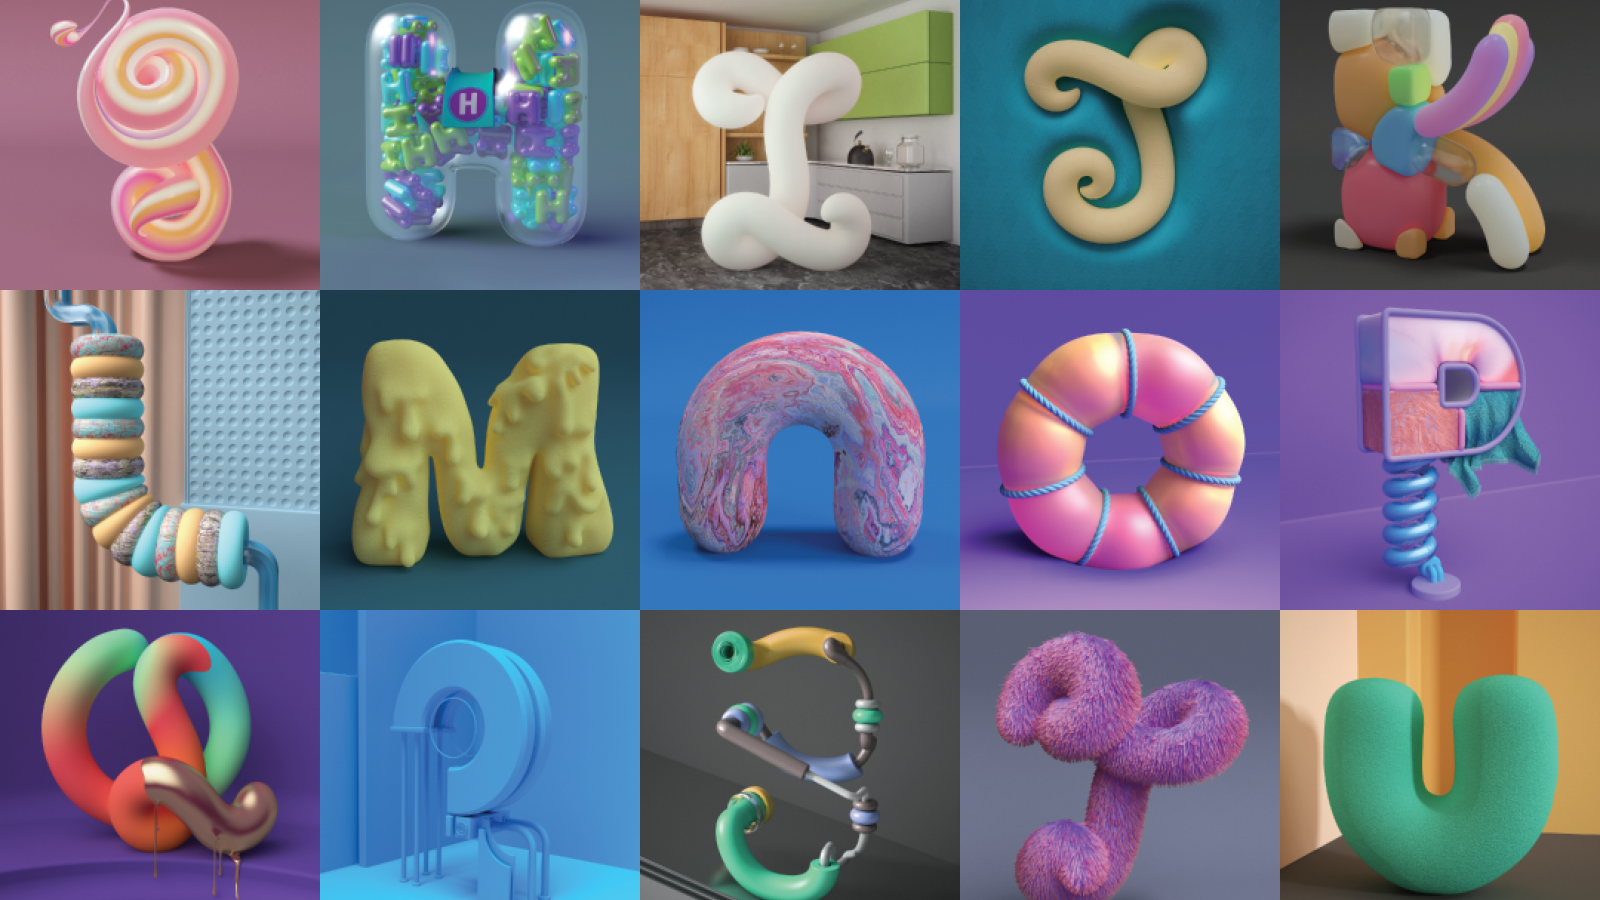 Typography: Exploring the Soft World of 3d with Smooth Alphabet